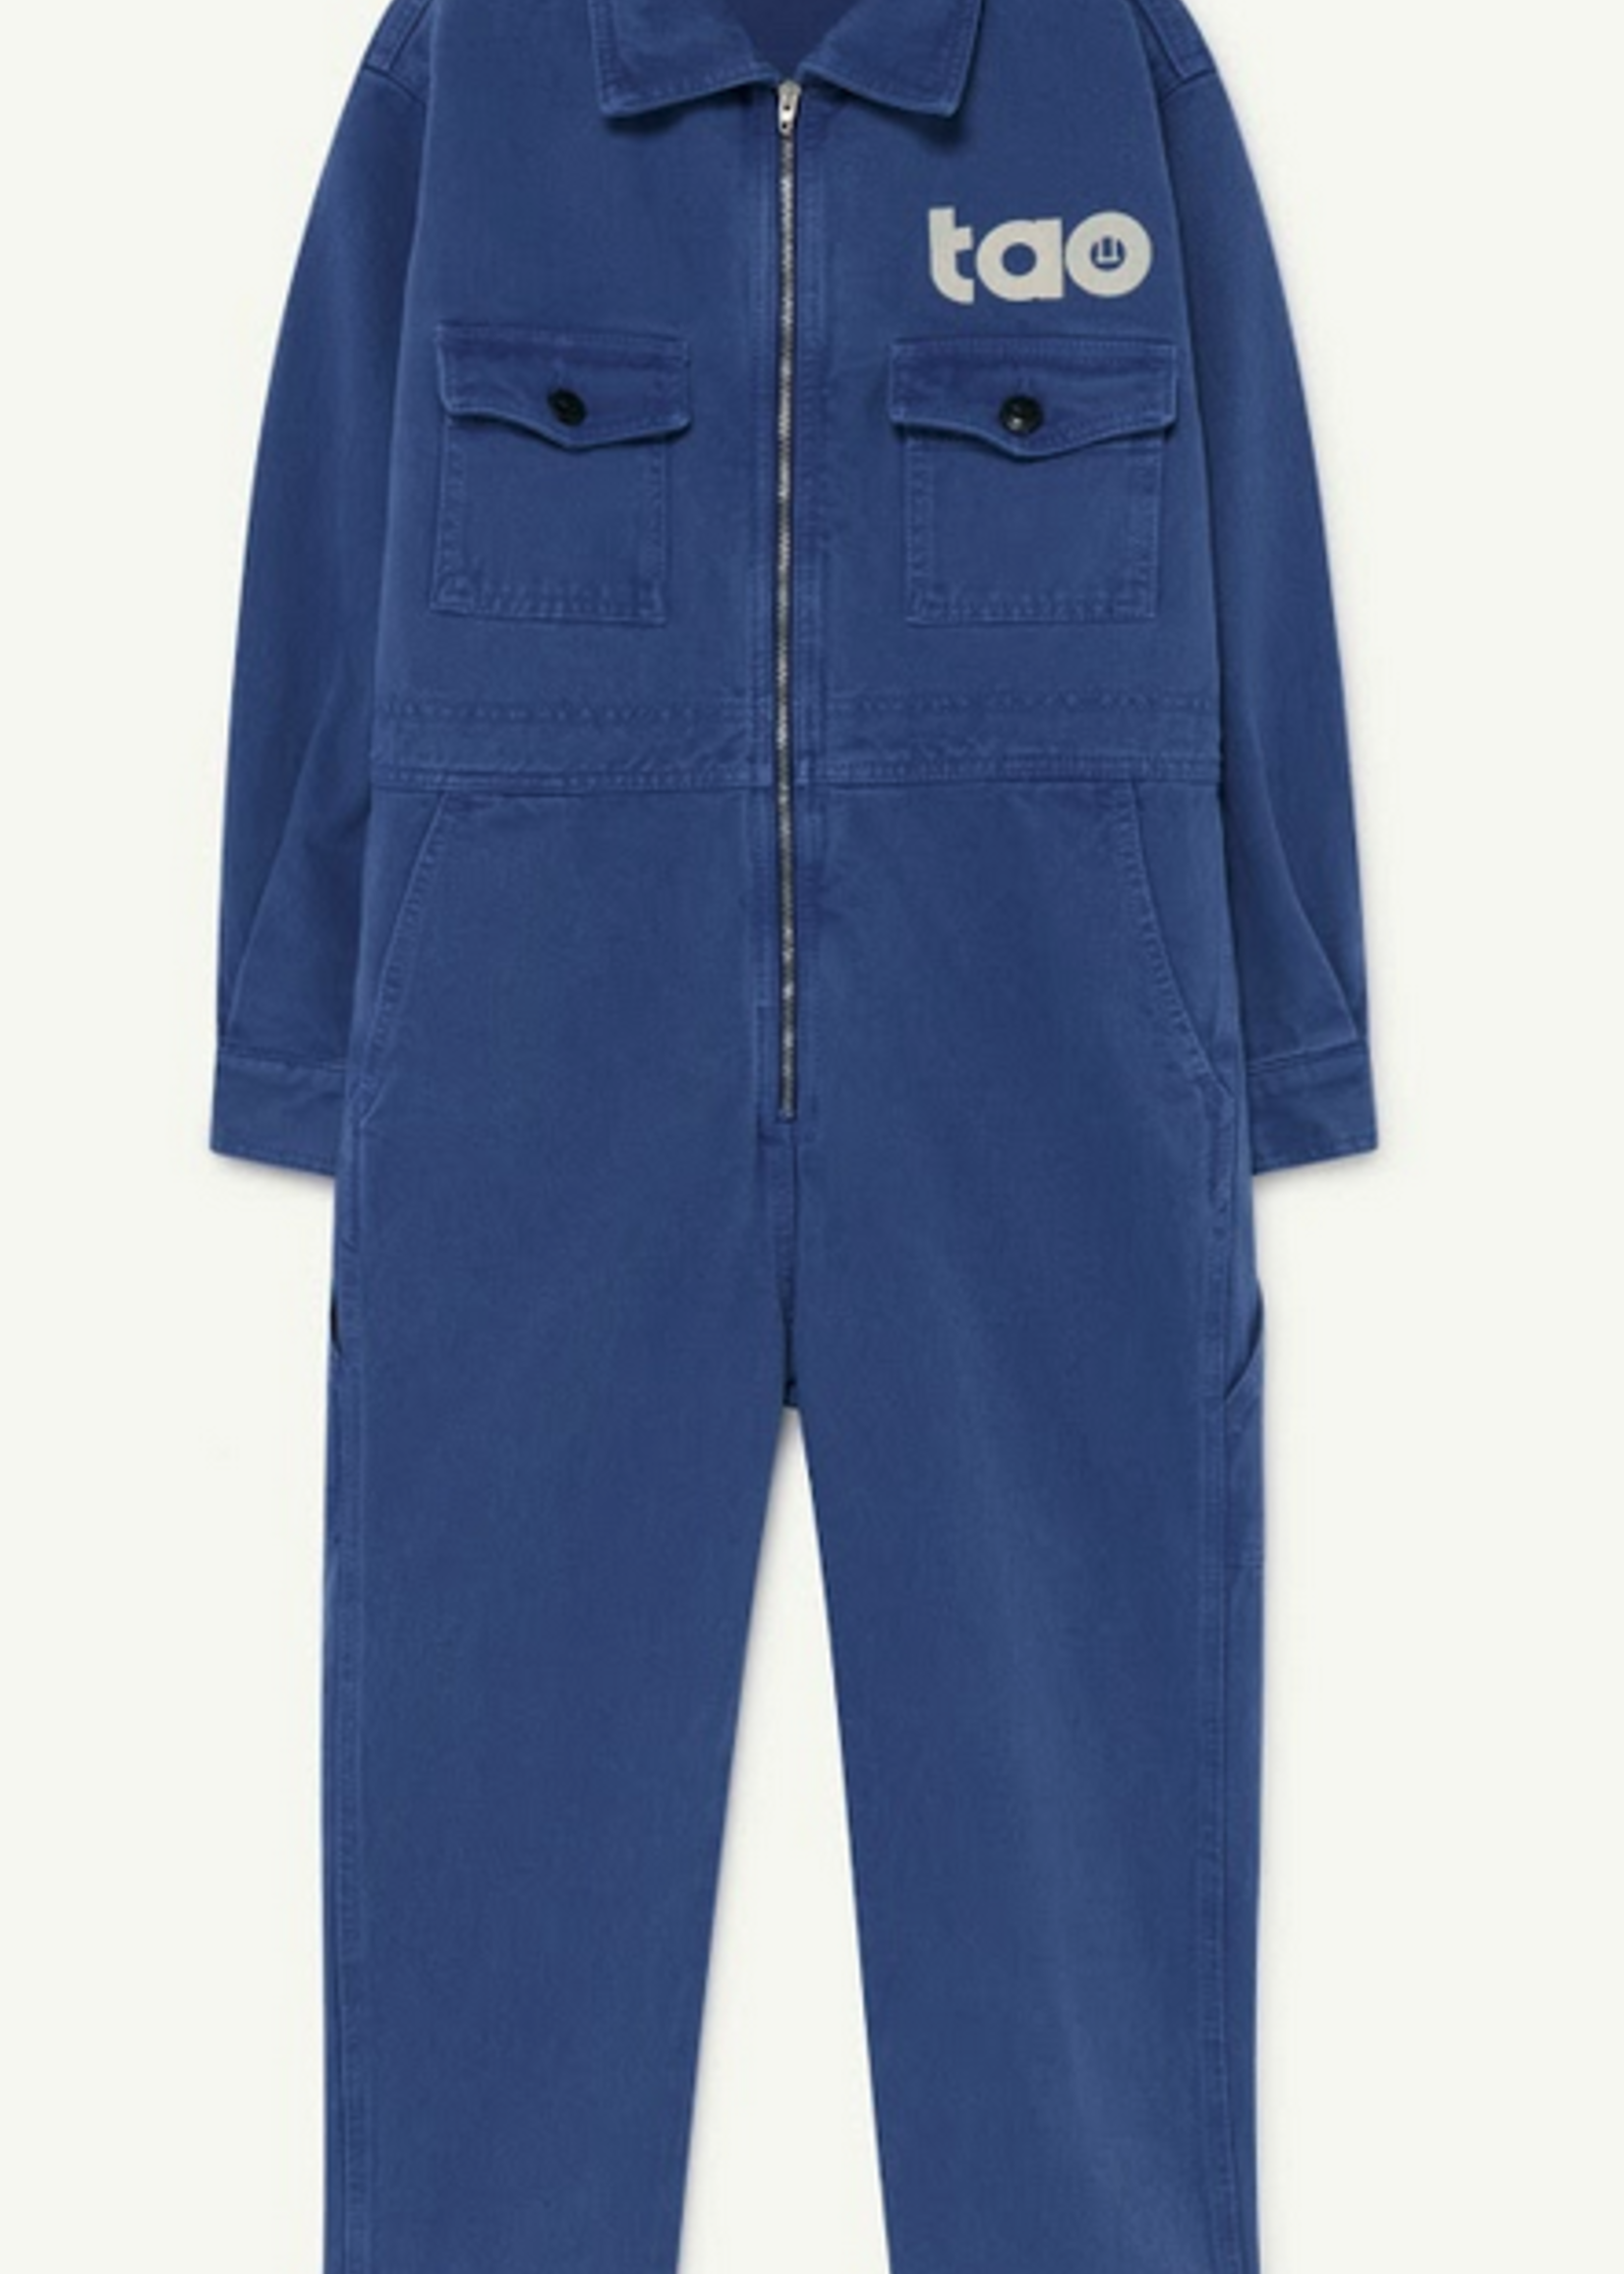 THE ANIMAL OBSERVATORY TAO JUMPSUIT GRASSHOPPER 003FN